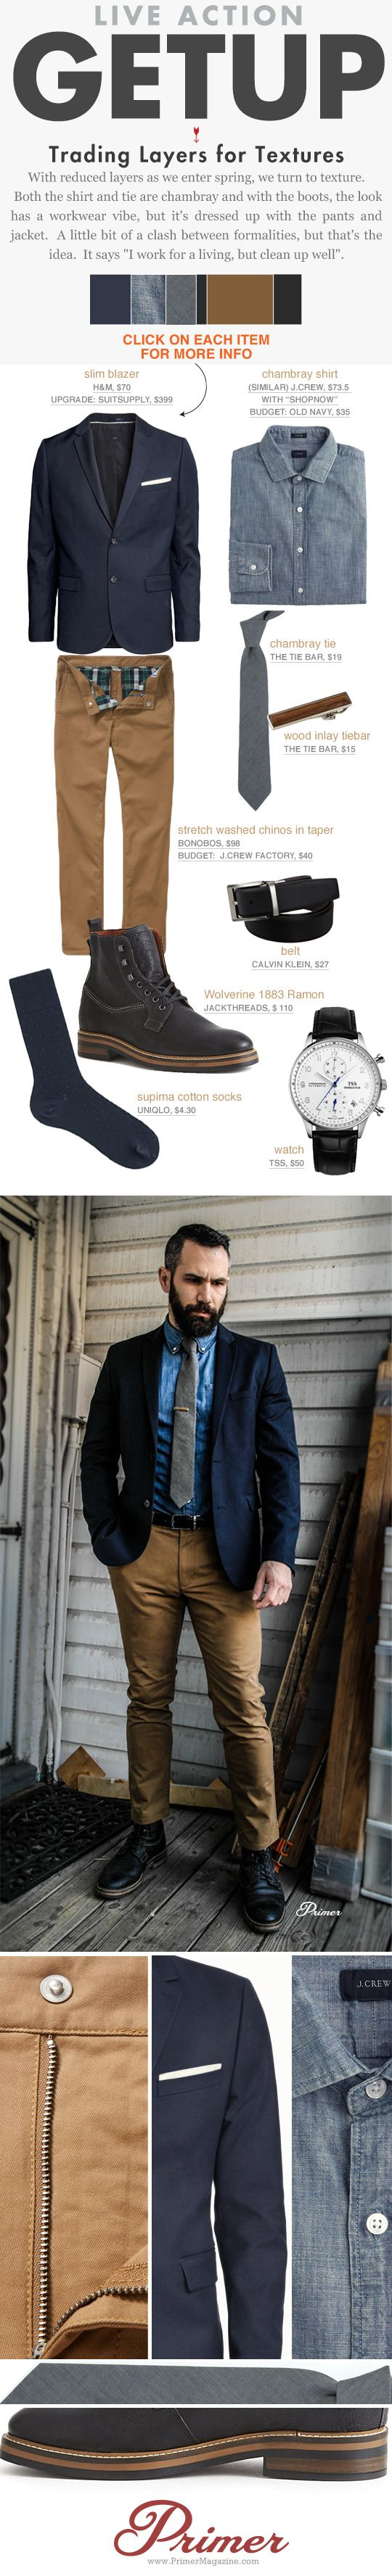 men's spring outfit ideas - chambray shirt chinos navy blazer black Wolverine boots